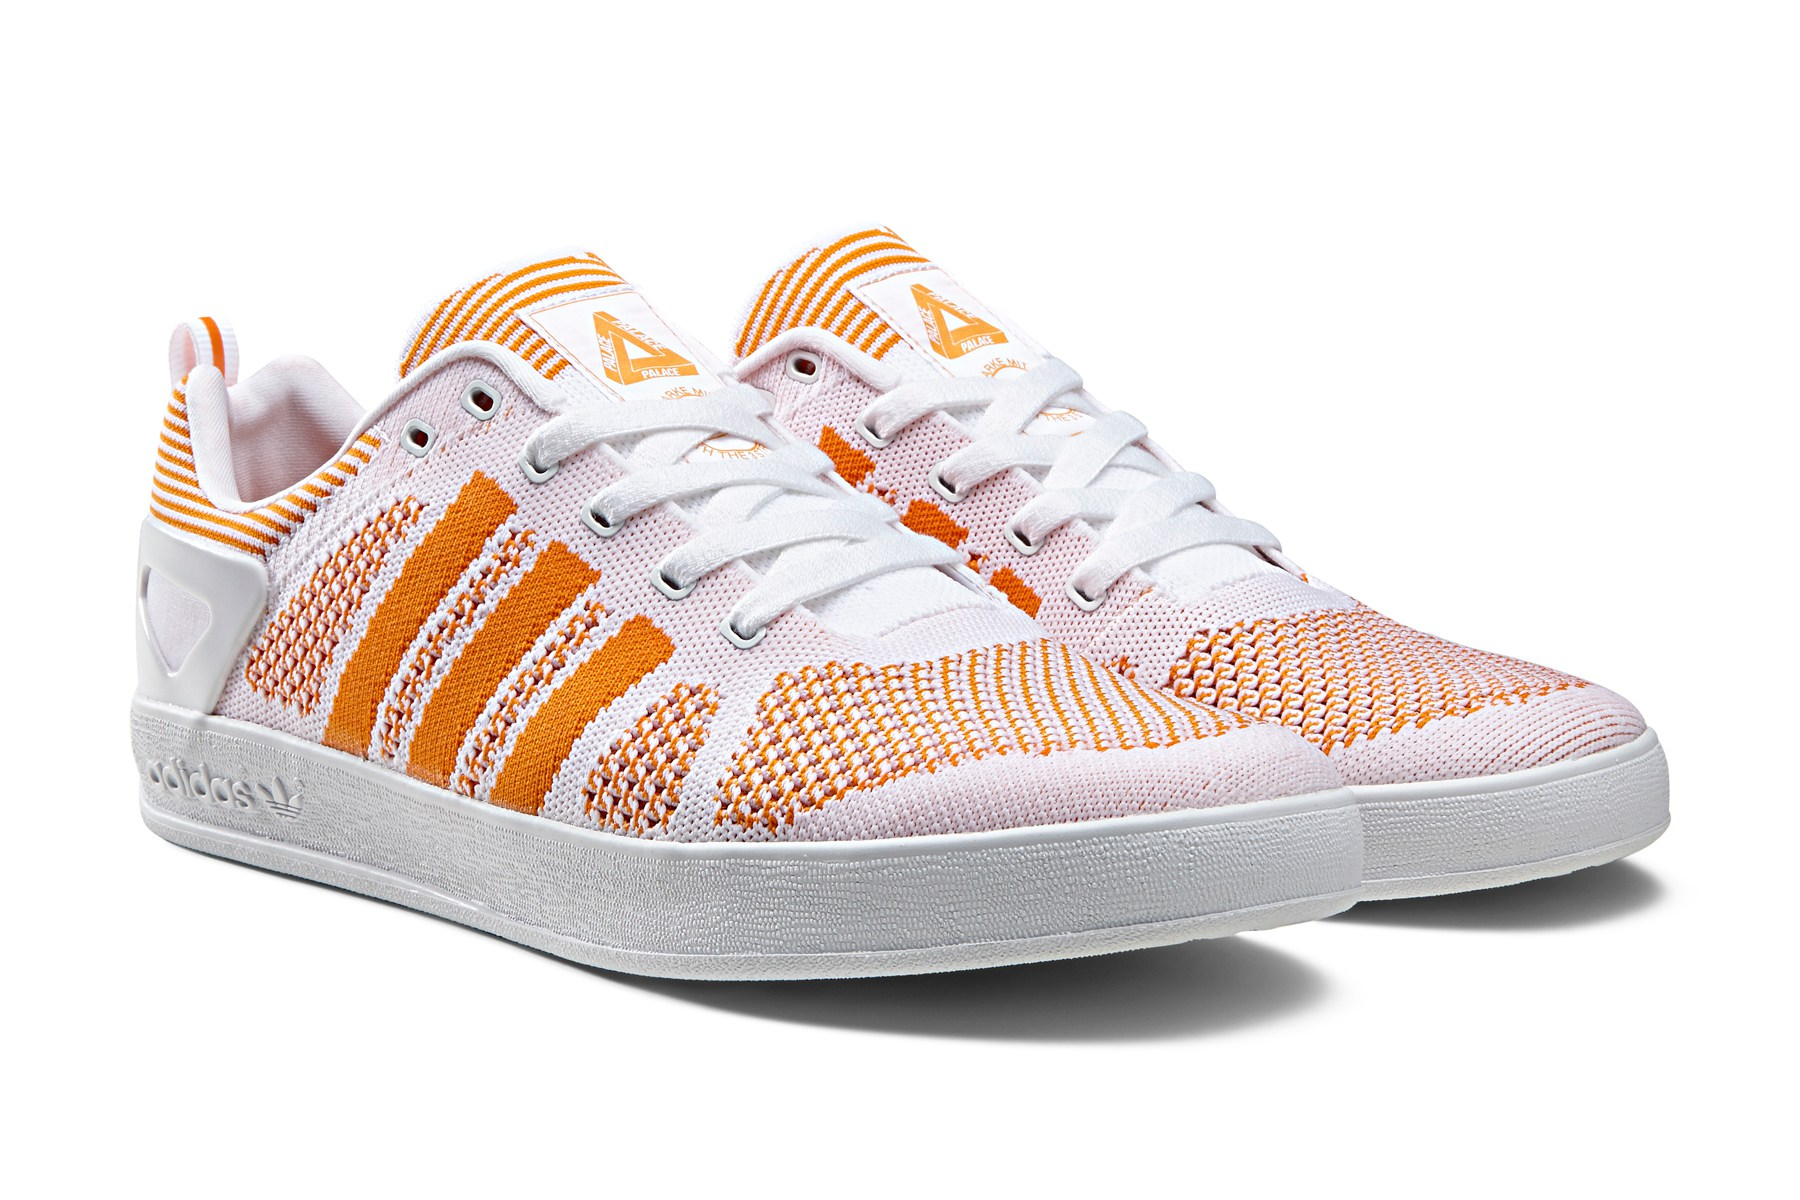 Releases WochenendeHypes Sneaker Are Am Us rBdCeoxW